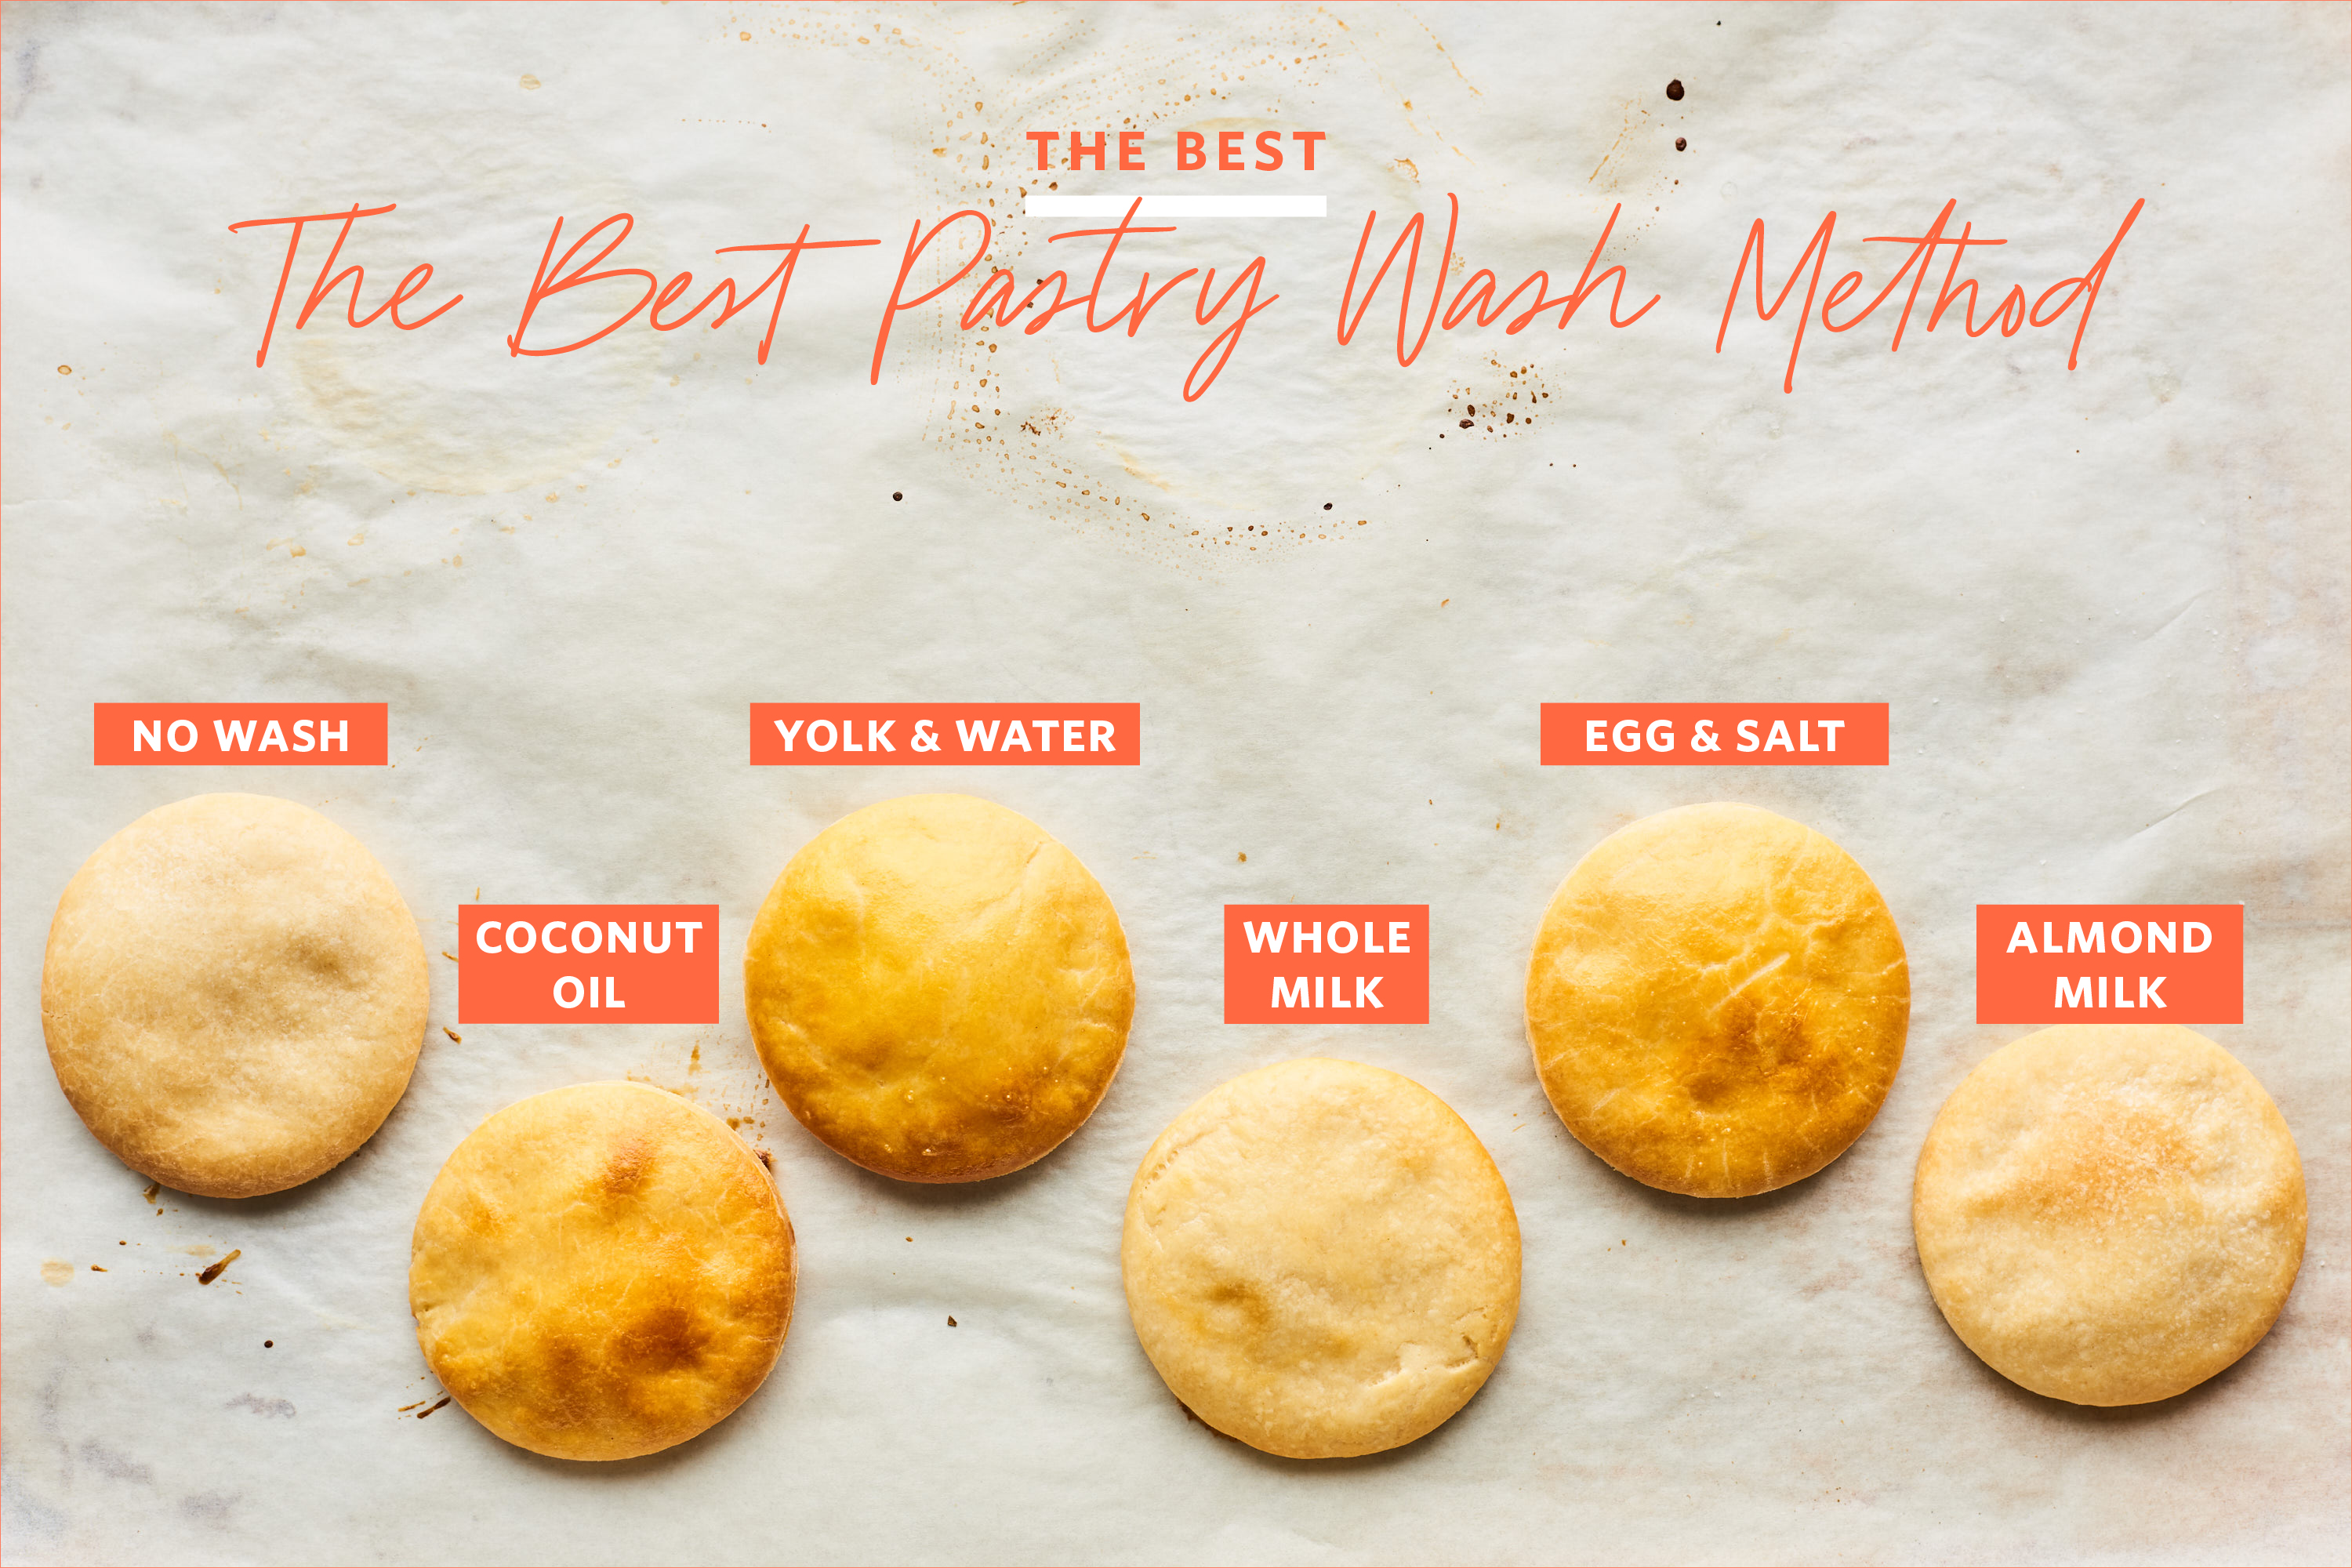 The Best Pastry Wash Method  Kitchn